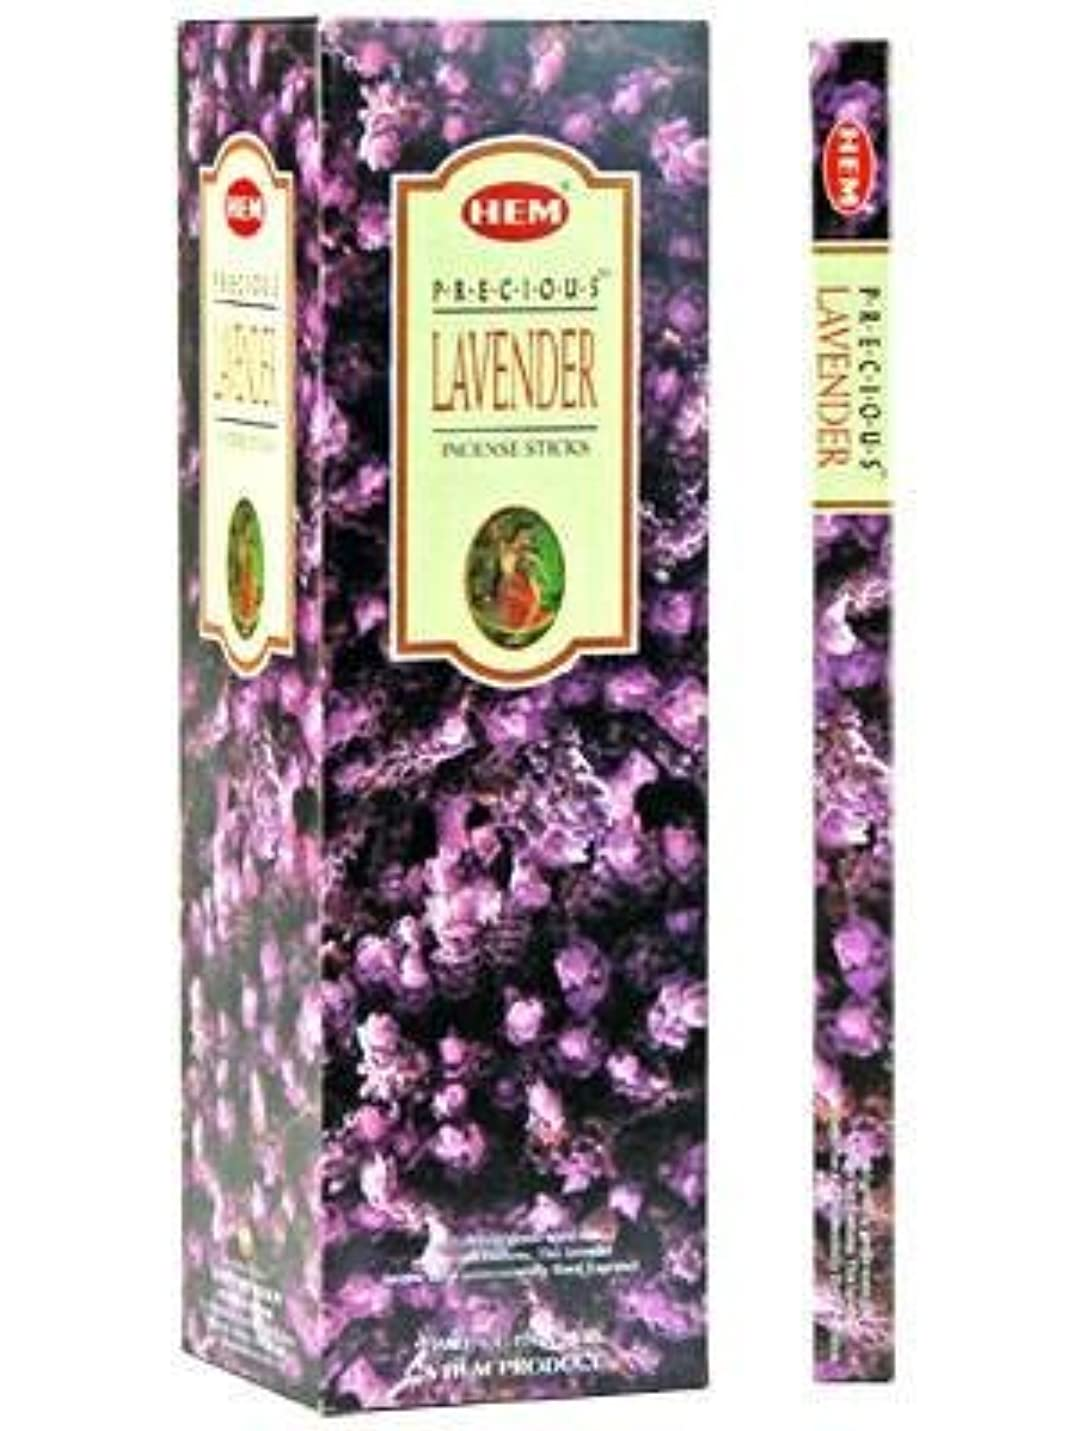 高齢者モーテル推測するHem Precious Lavender - 20gr Packs - 6/Box